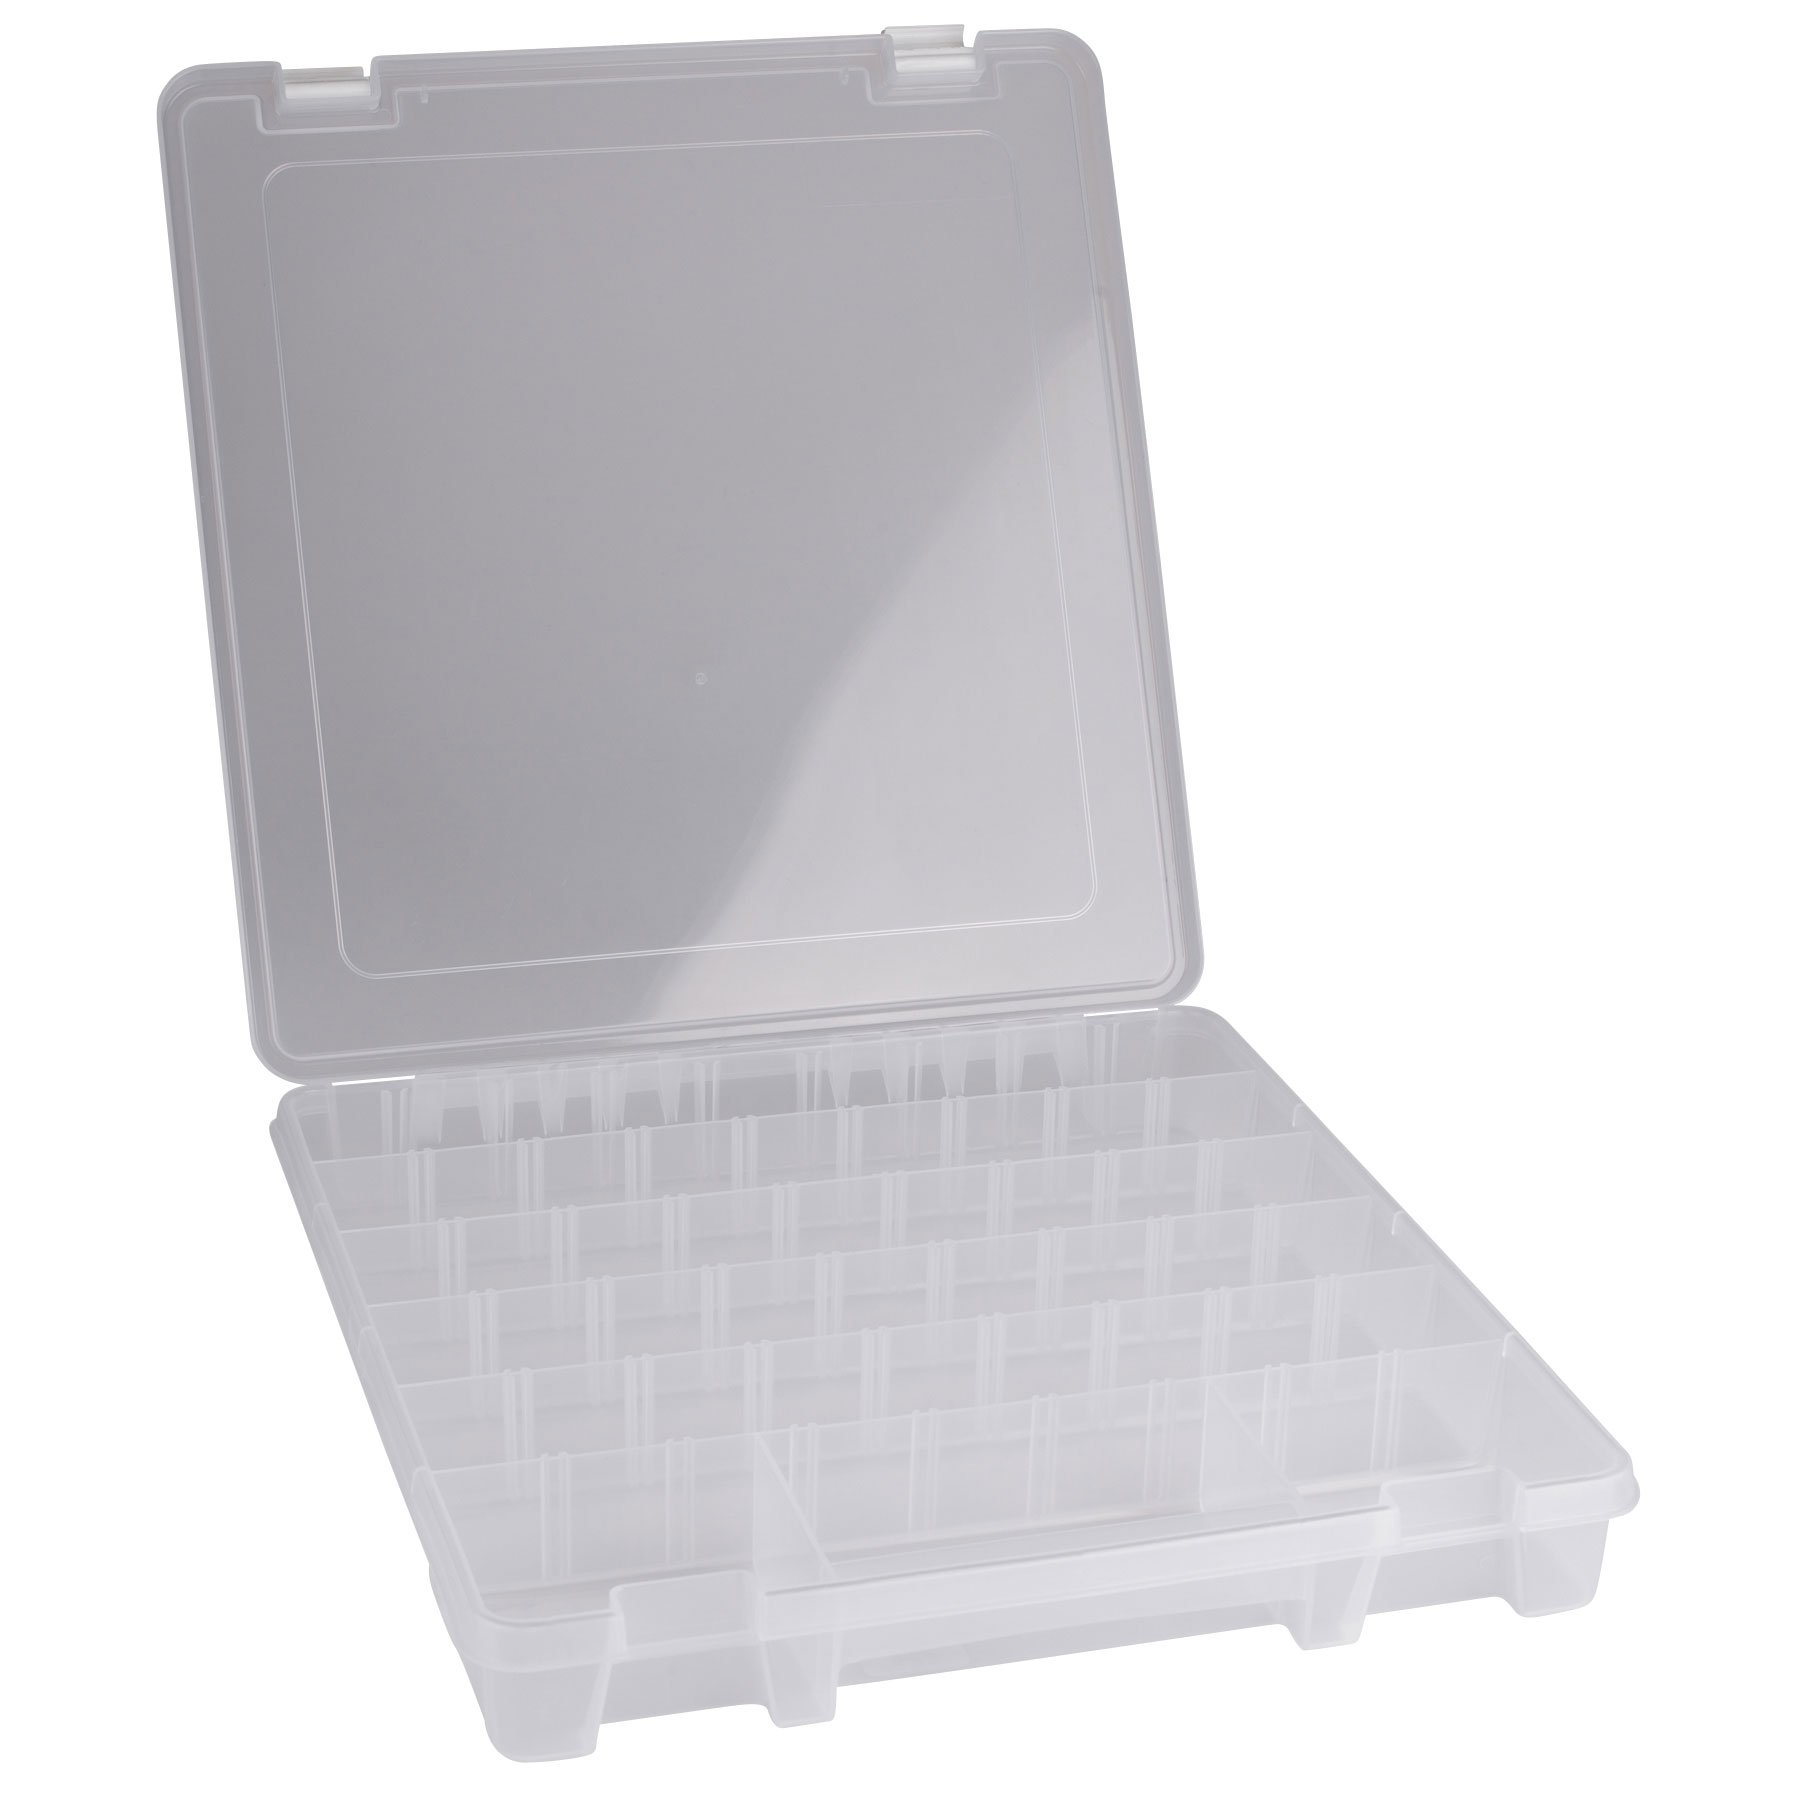 8 to 28 Compartment Parts Box Includes 20 Dividers 15.25 inch x 14 inch x 2 inch